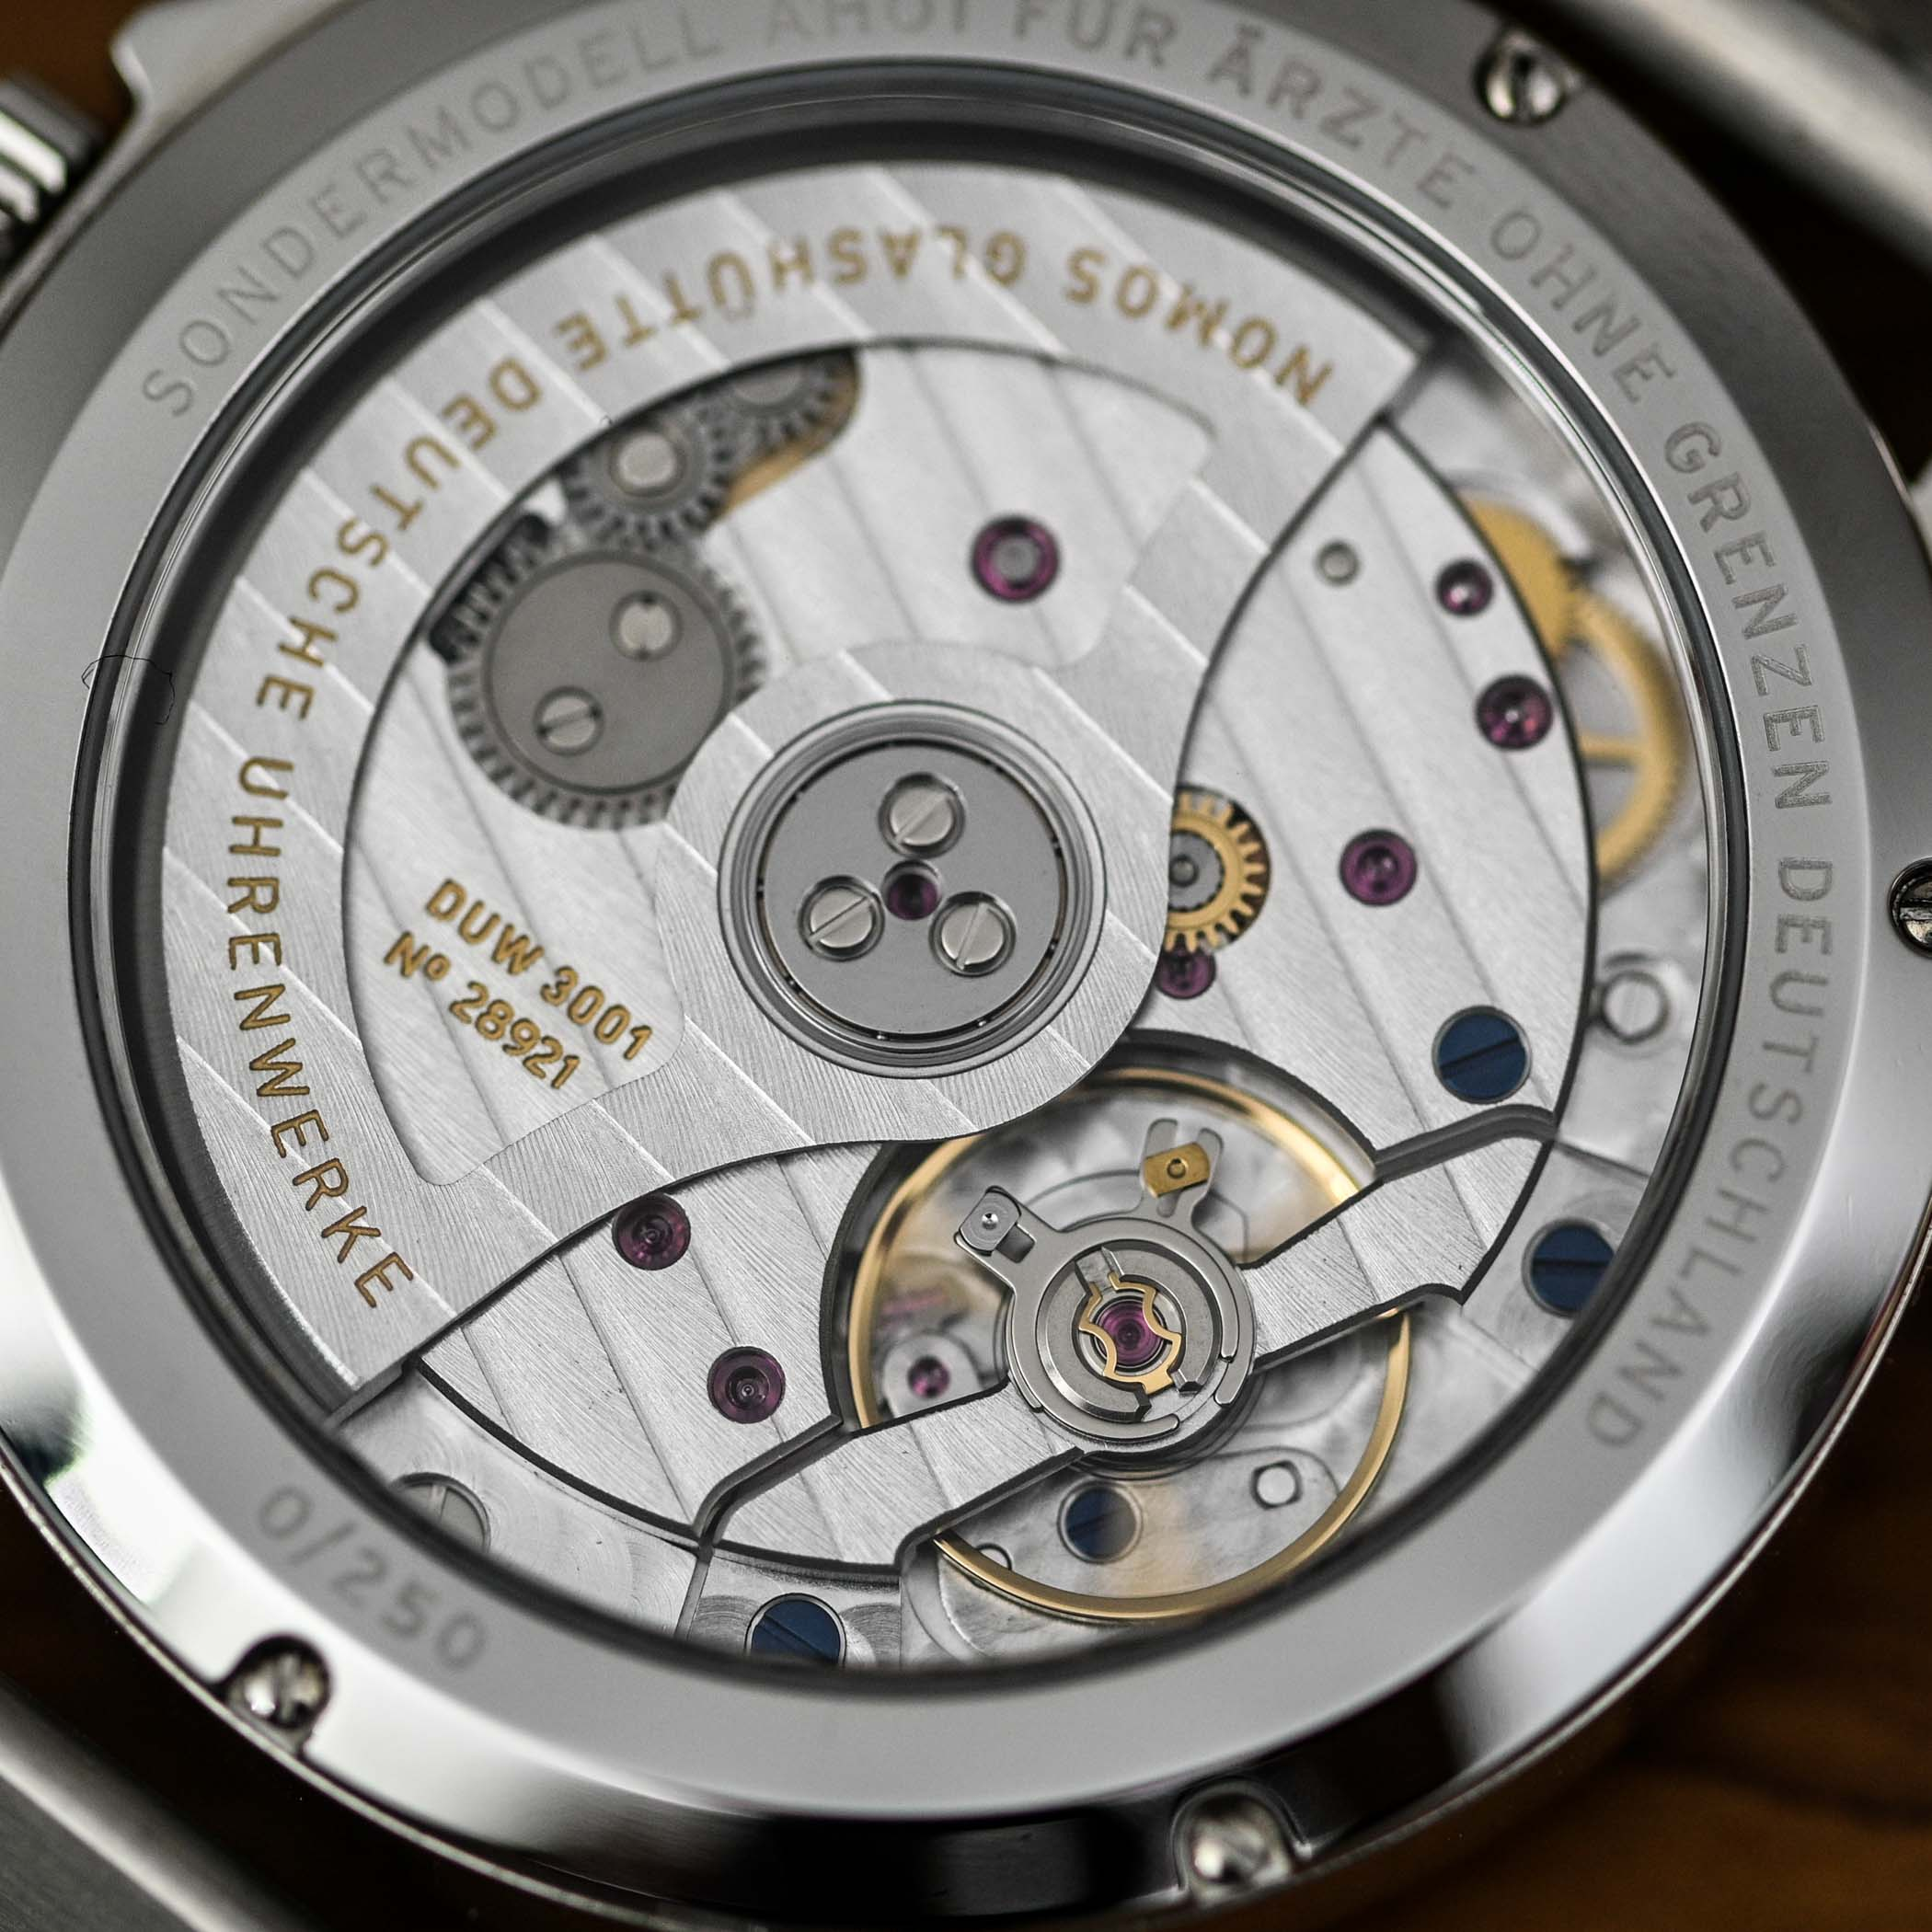 NOMOS Ahoi Neomatik Doctors Without Borders Limited Edition - review - 9